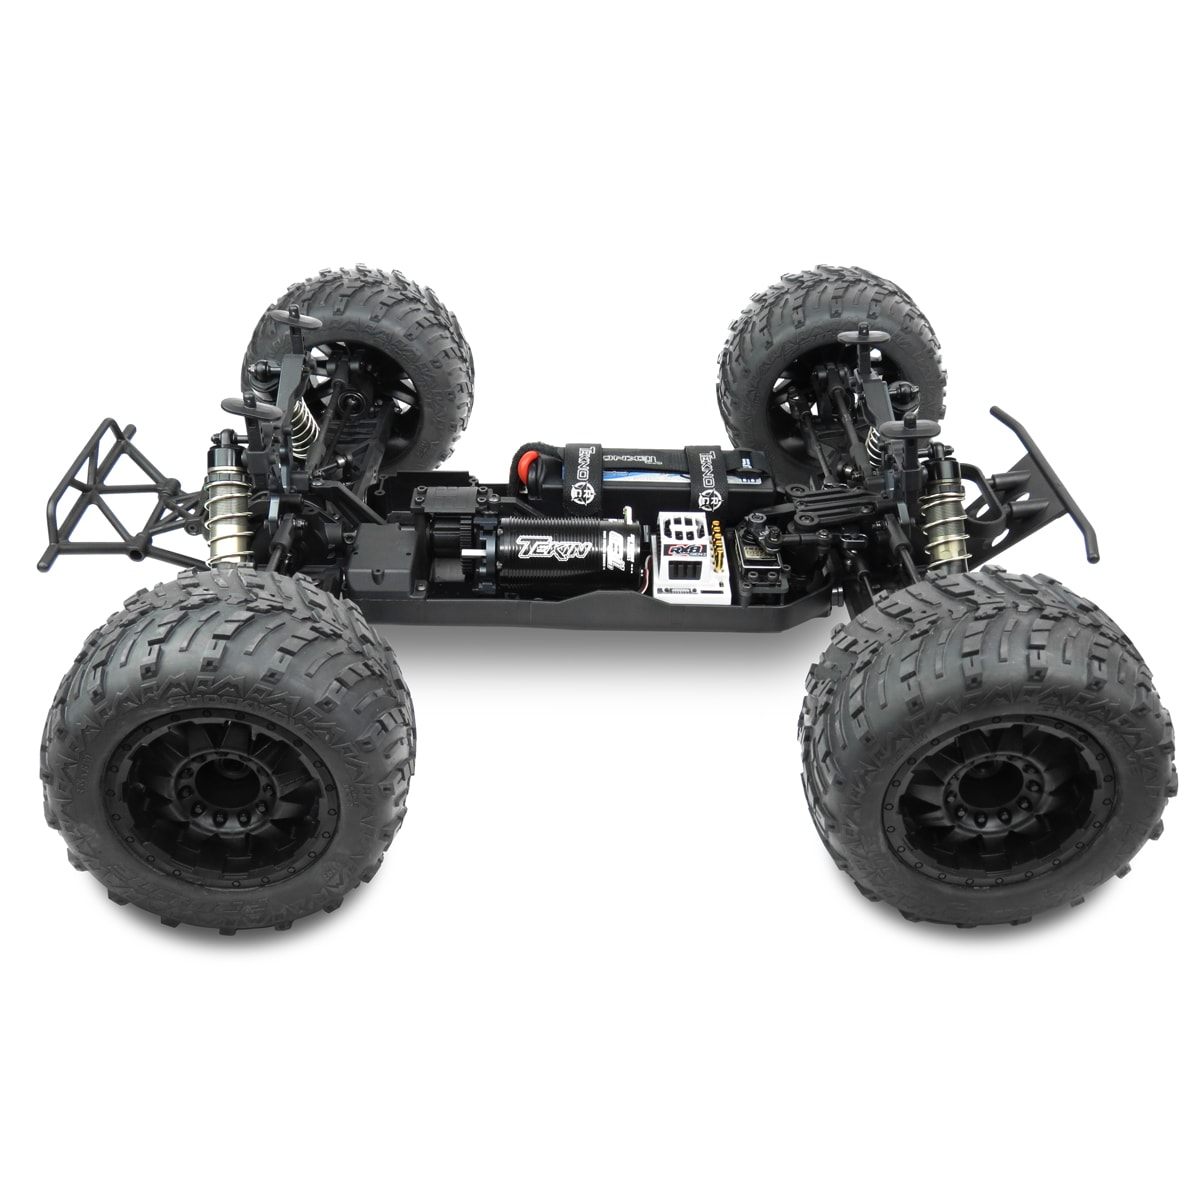 Tekno Rc Mt410 Monster Truck on tekin rx8 motor